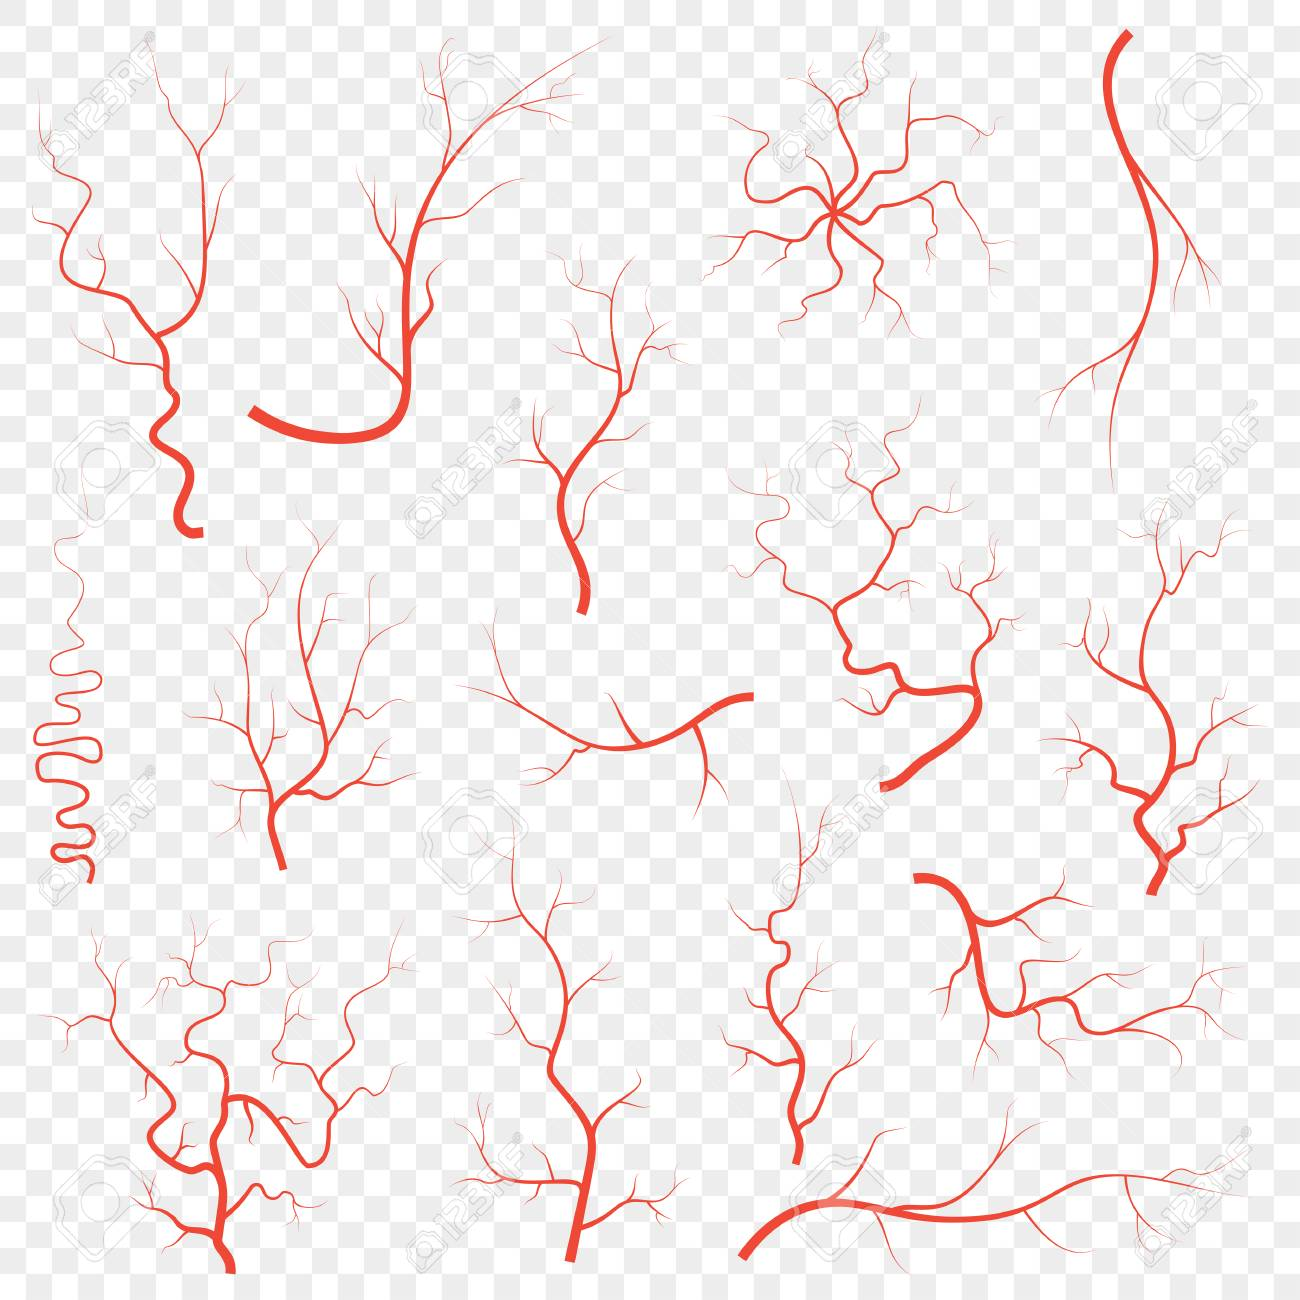 Human Red Eye Veins Set Anatomy Blood Vessel Arteries Illustration Royalty Free Cliparts Vectors And Stock Illustration Image 126304049 Blood vessel texture illustrations & vectors. human red eye veins set anatomy blood vessel arteries illustration